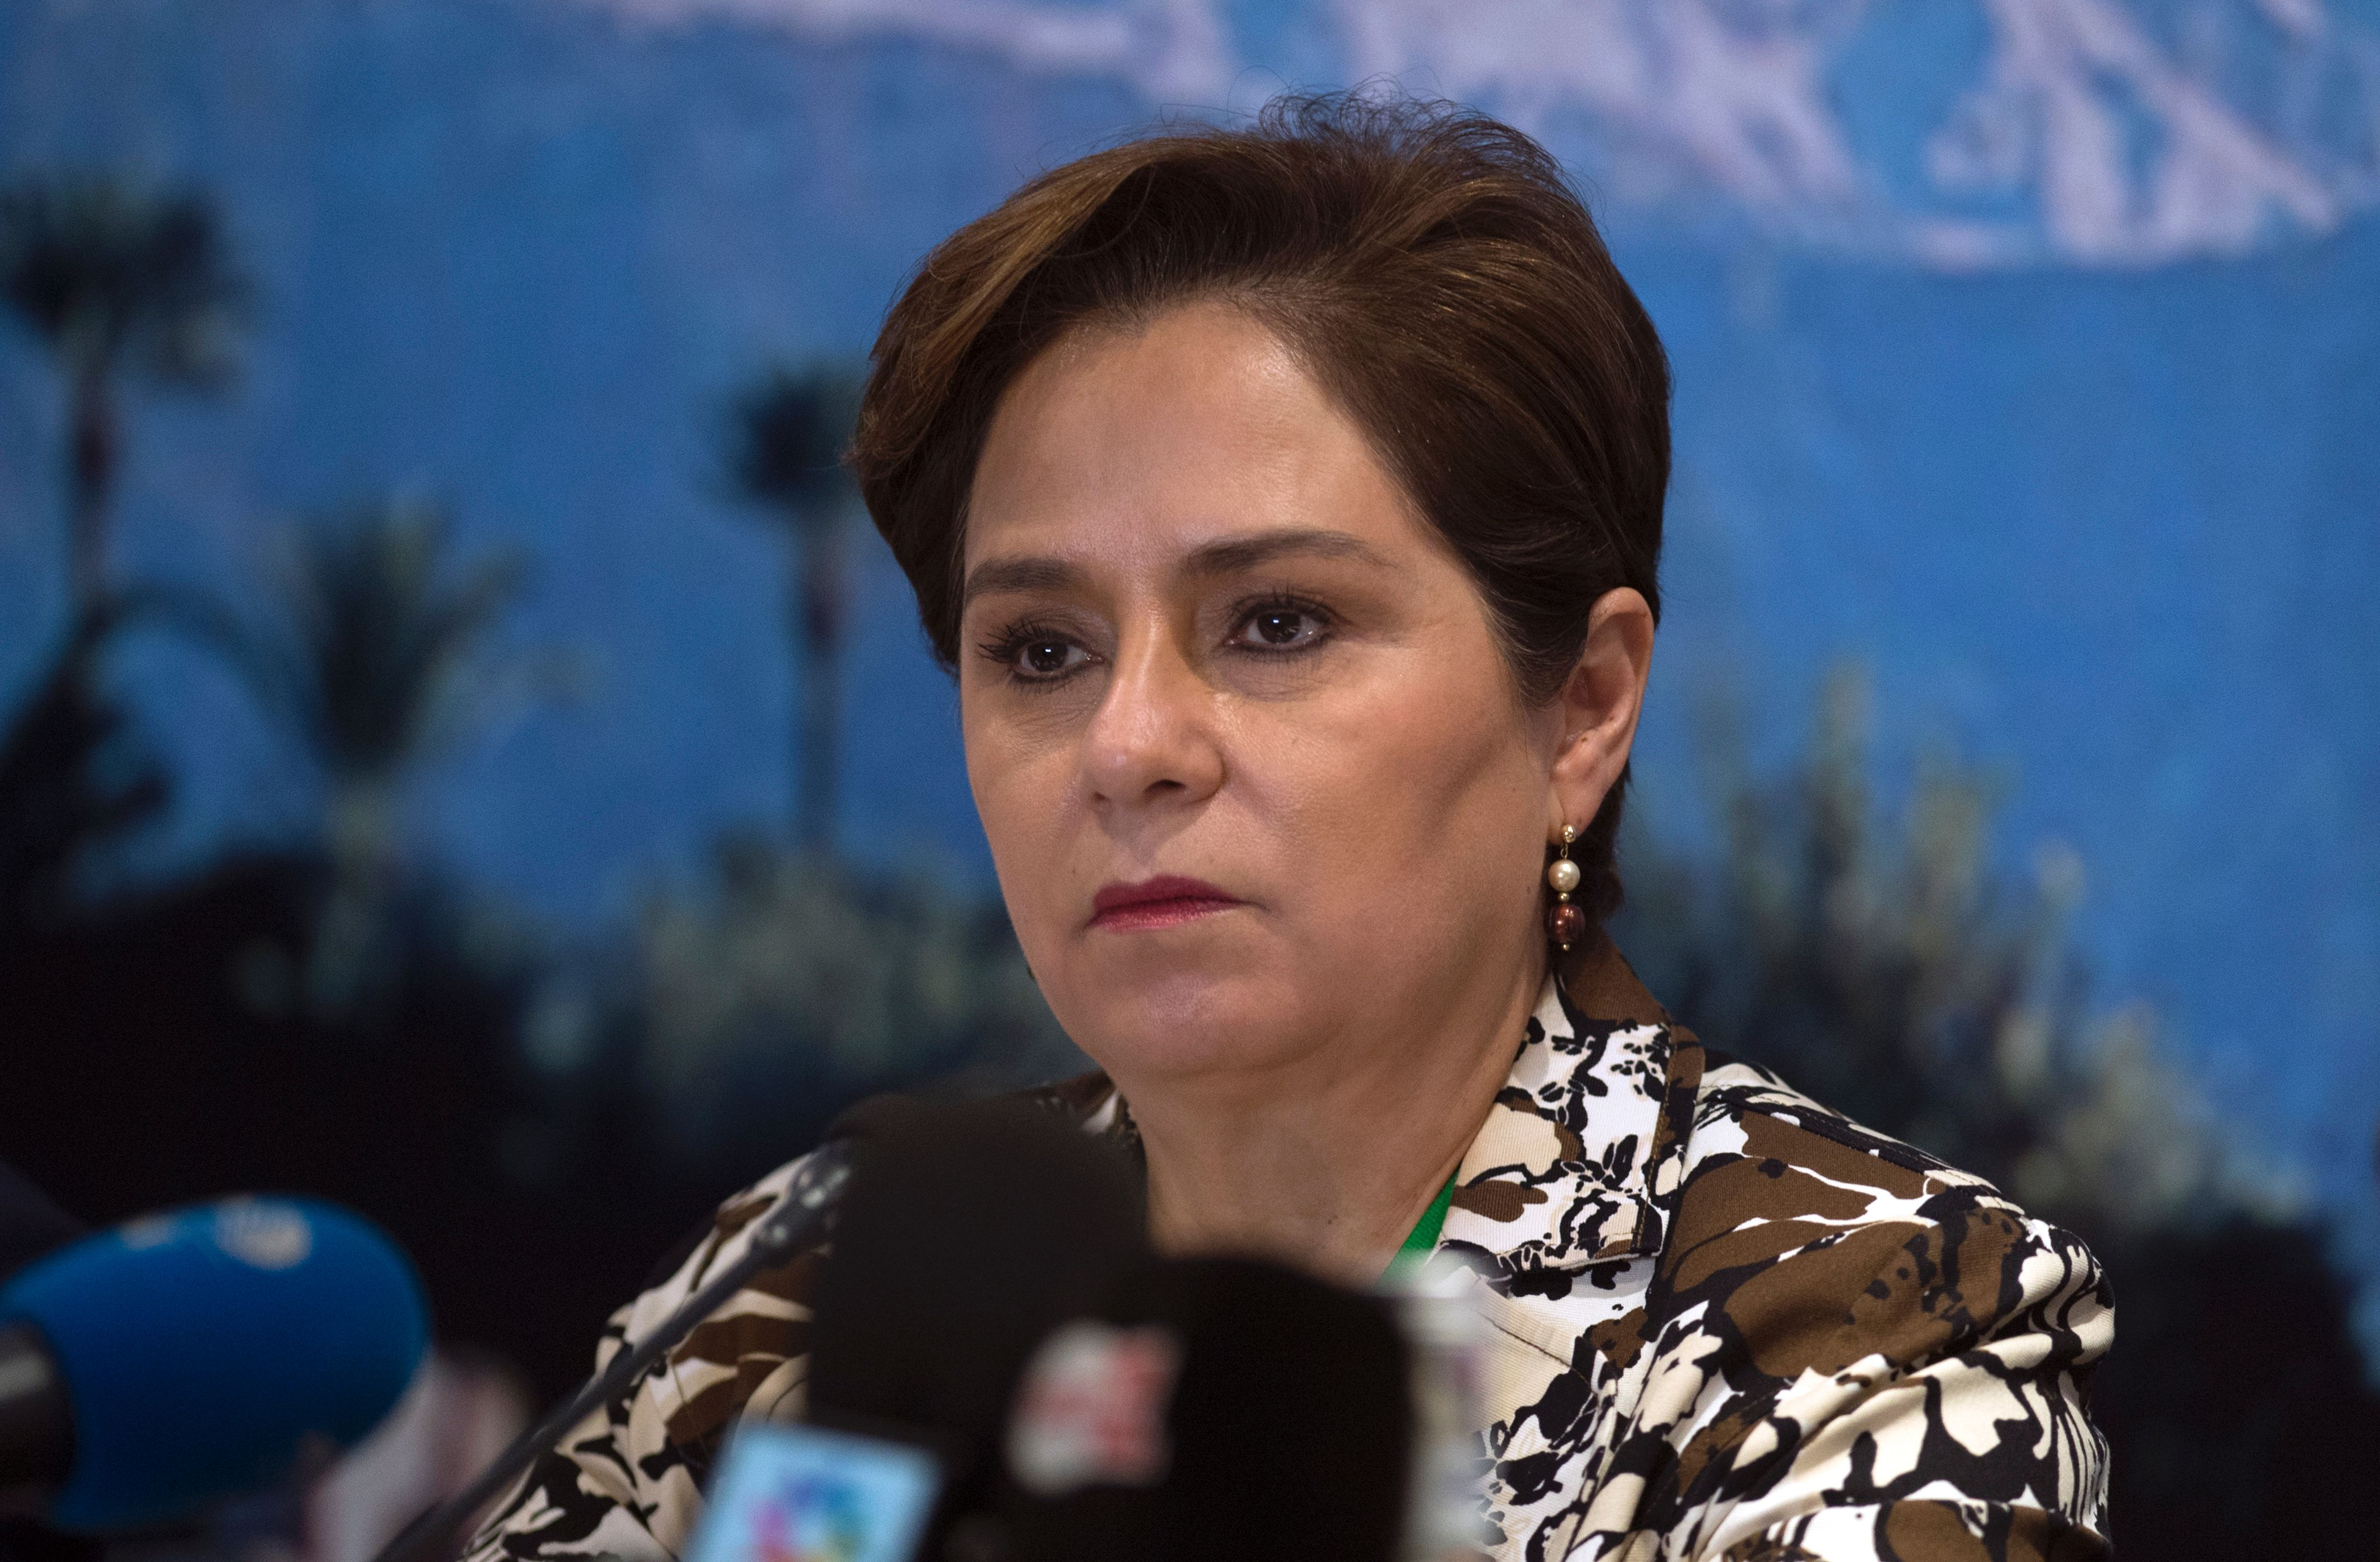 Patricia Espinosa, Executive Secretary of the United Nations Framework Convention on Climate Change (UNFCCC), speaks during a press conference ahead of the COP22 meeting in Marrakesh in 2016.